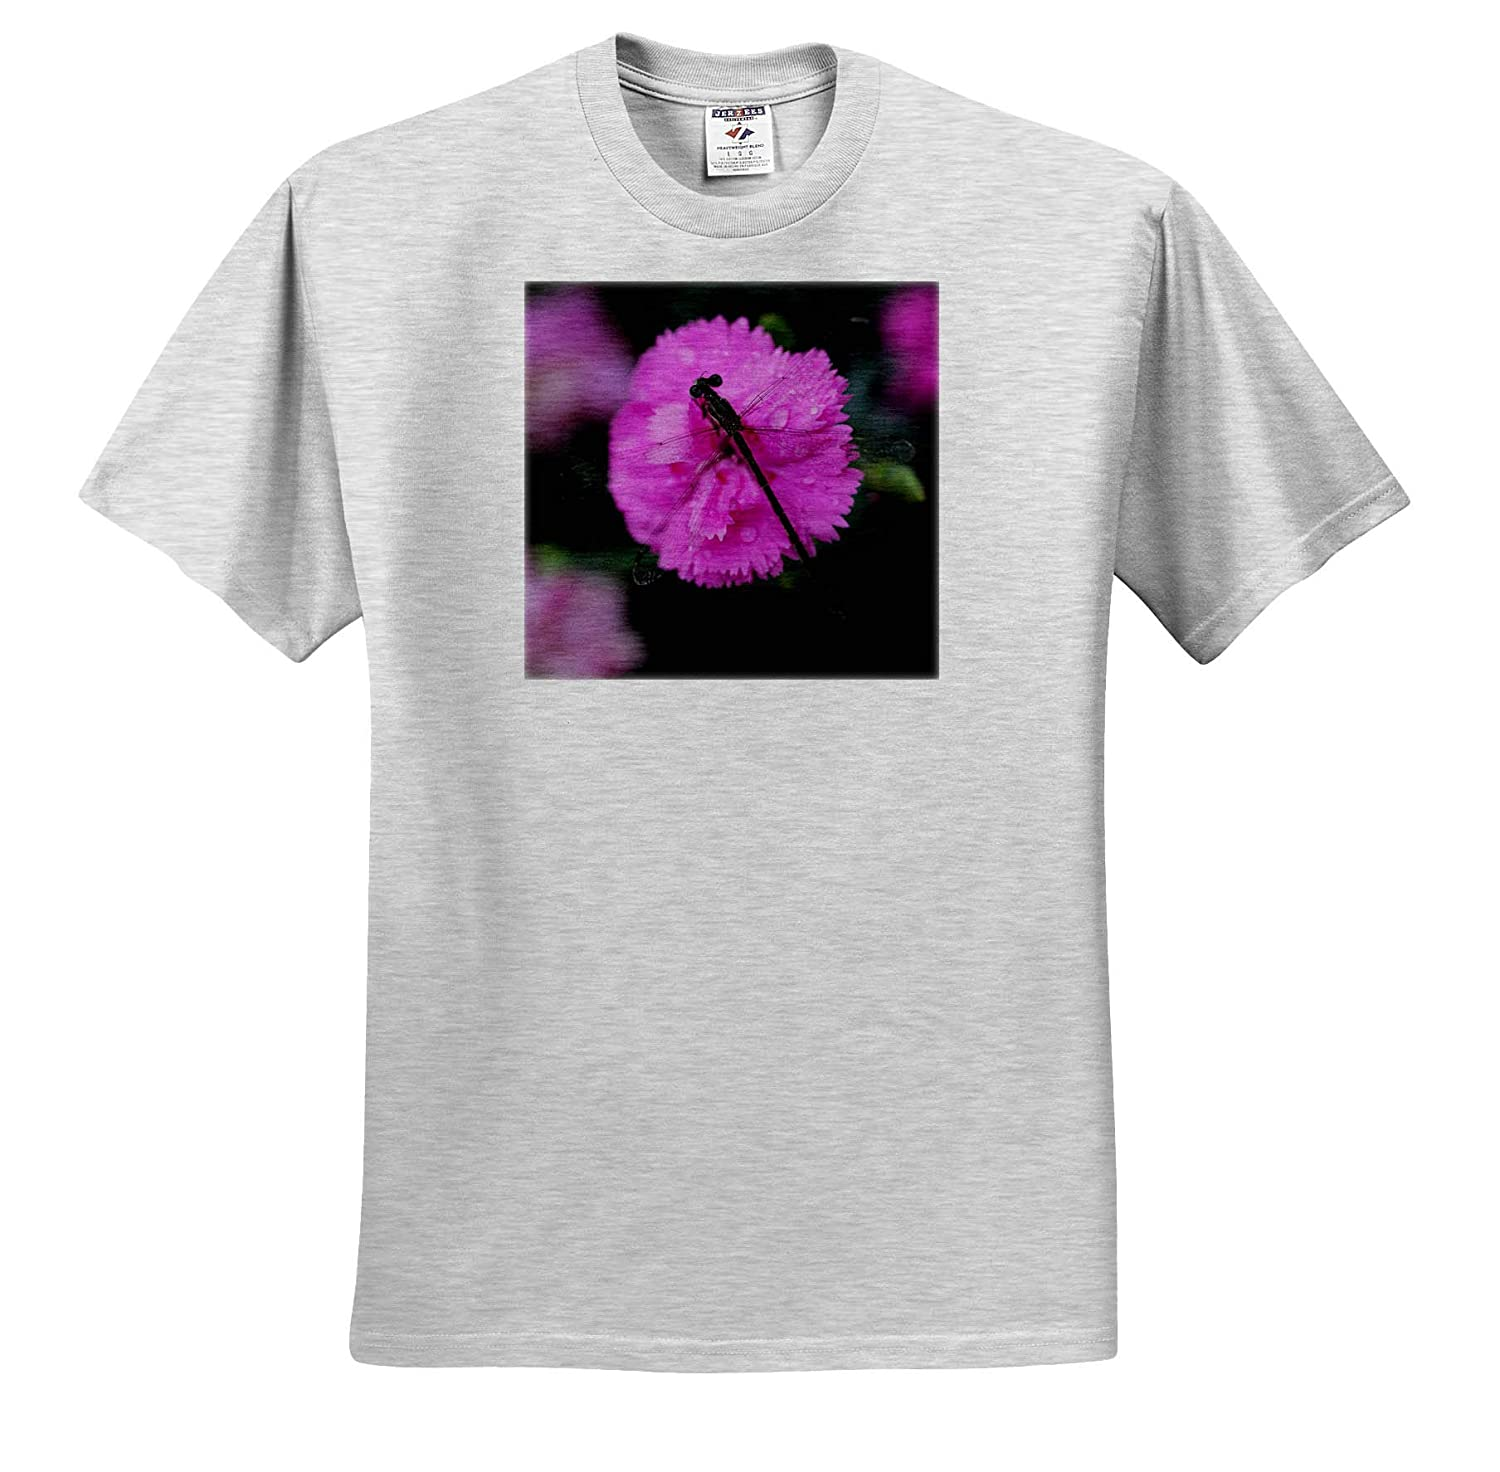 - Adult T-Shirt XL 3dRose Stamp City Macro Photograph of a damselfly on a Pink Dianthus Flower ts/_315558 Insect